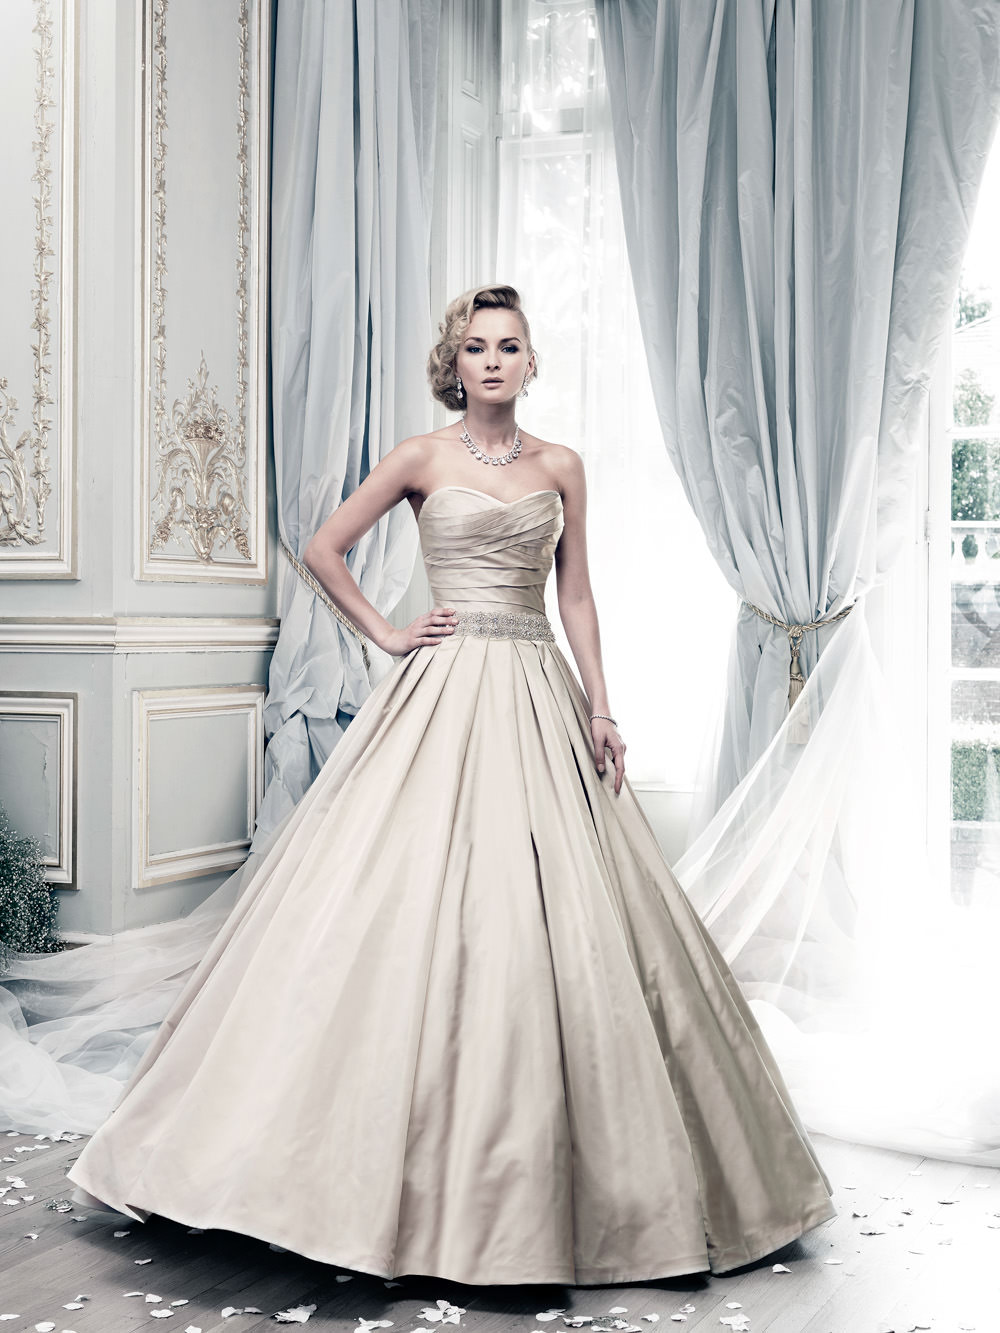 Wedding Dresses From Charlotte Balbier, Amanda Wyatt, Suzanne ...